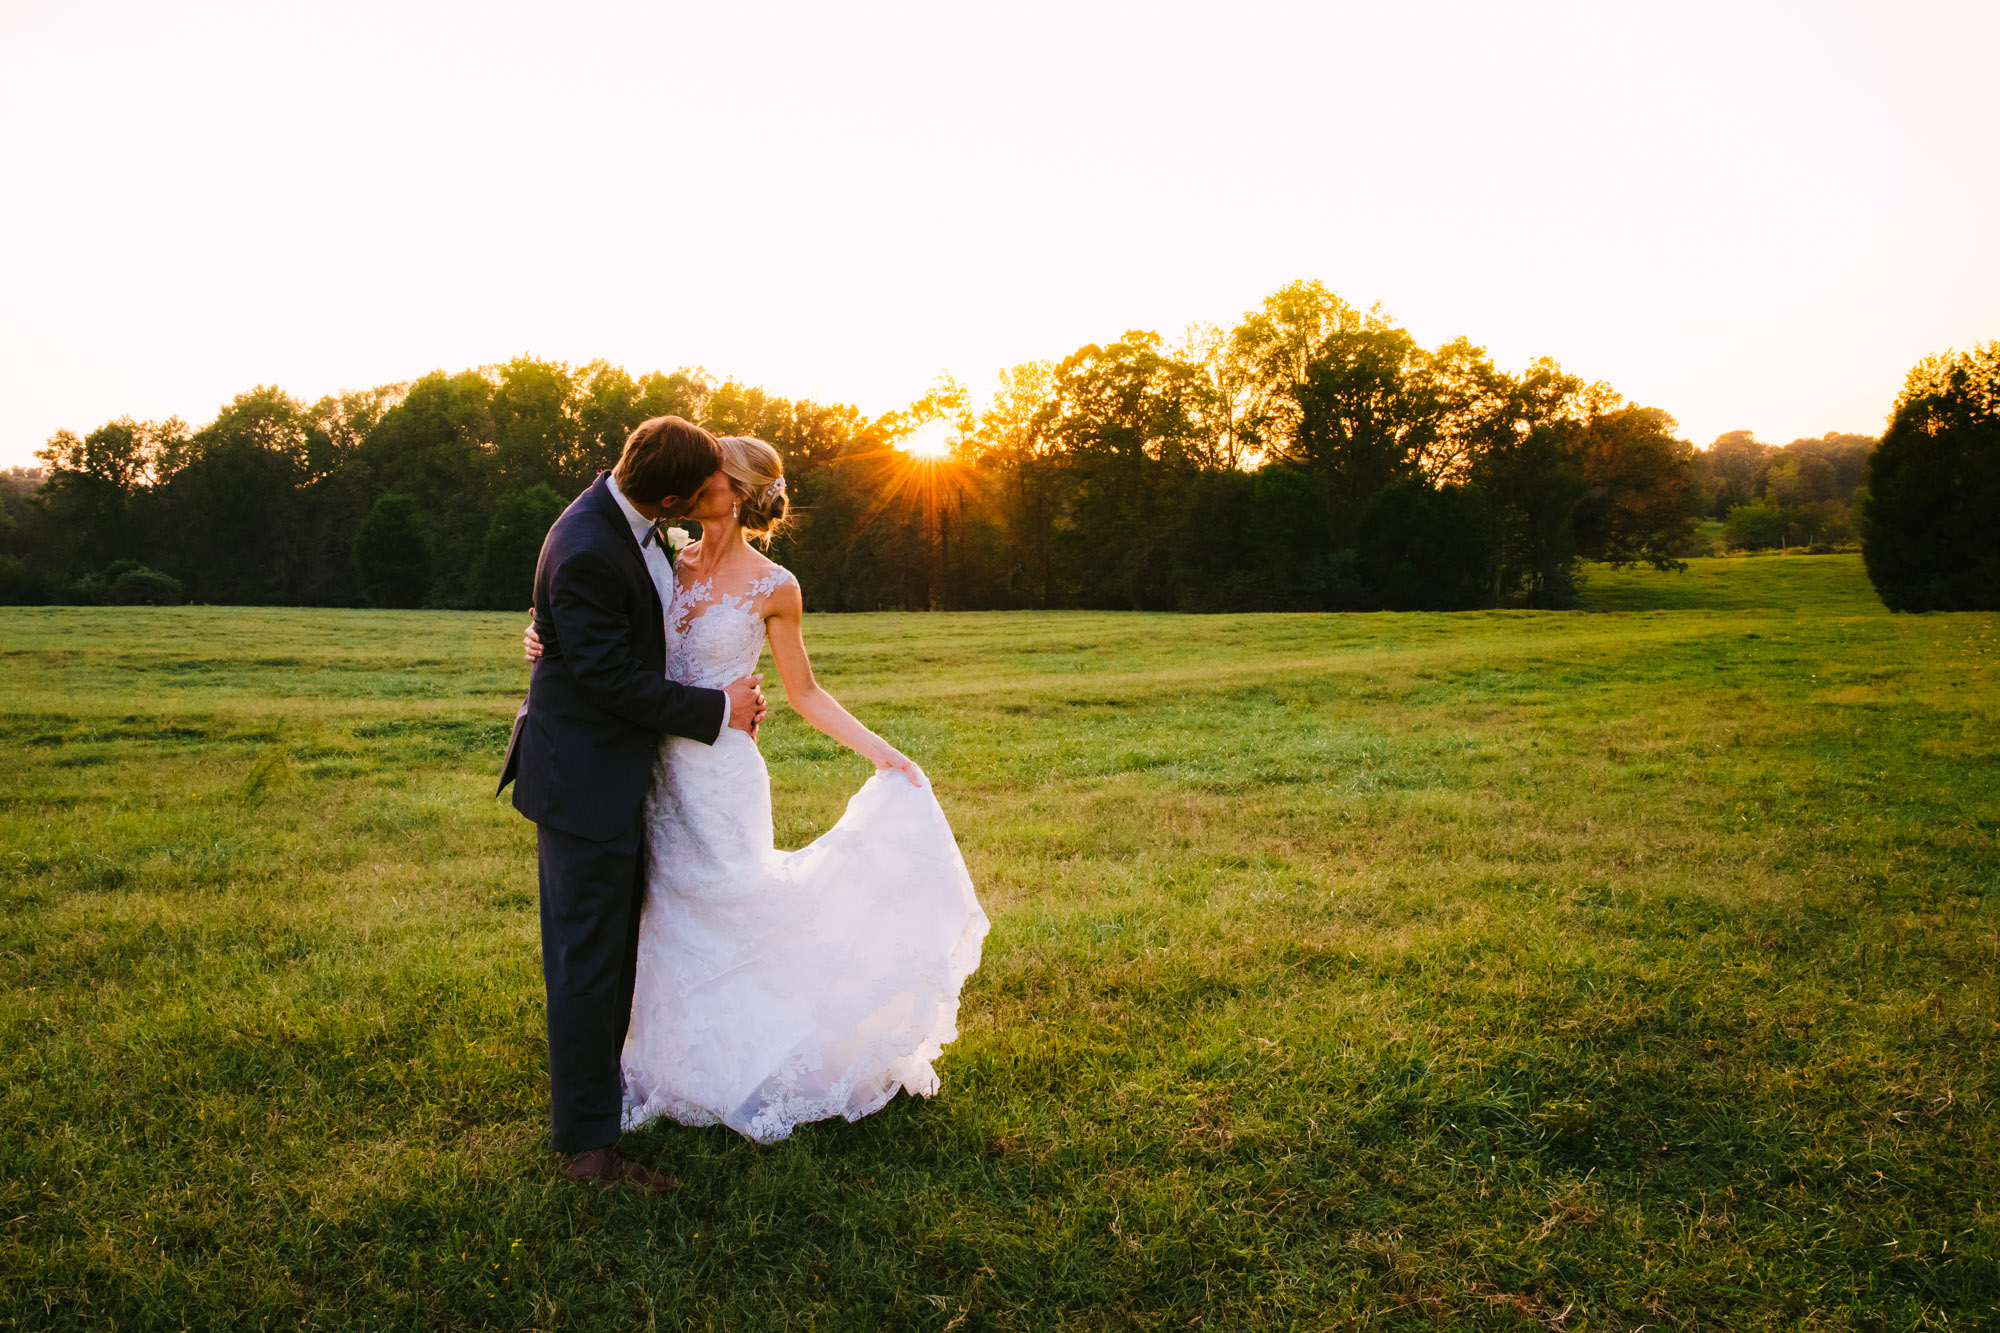 Waynesville, NC Wedding Photography | Bride and Groom Sunset Portrait in the Field